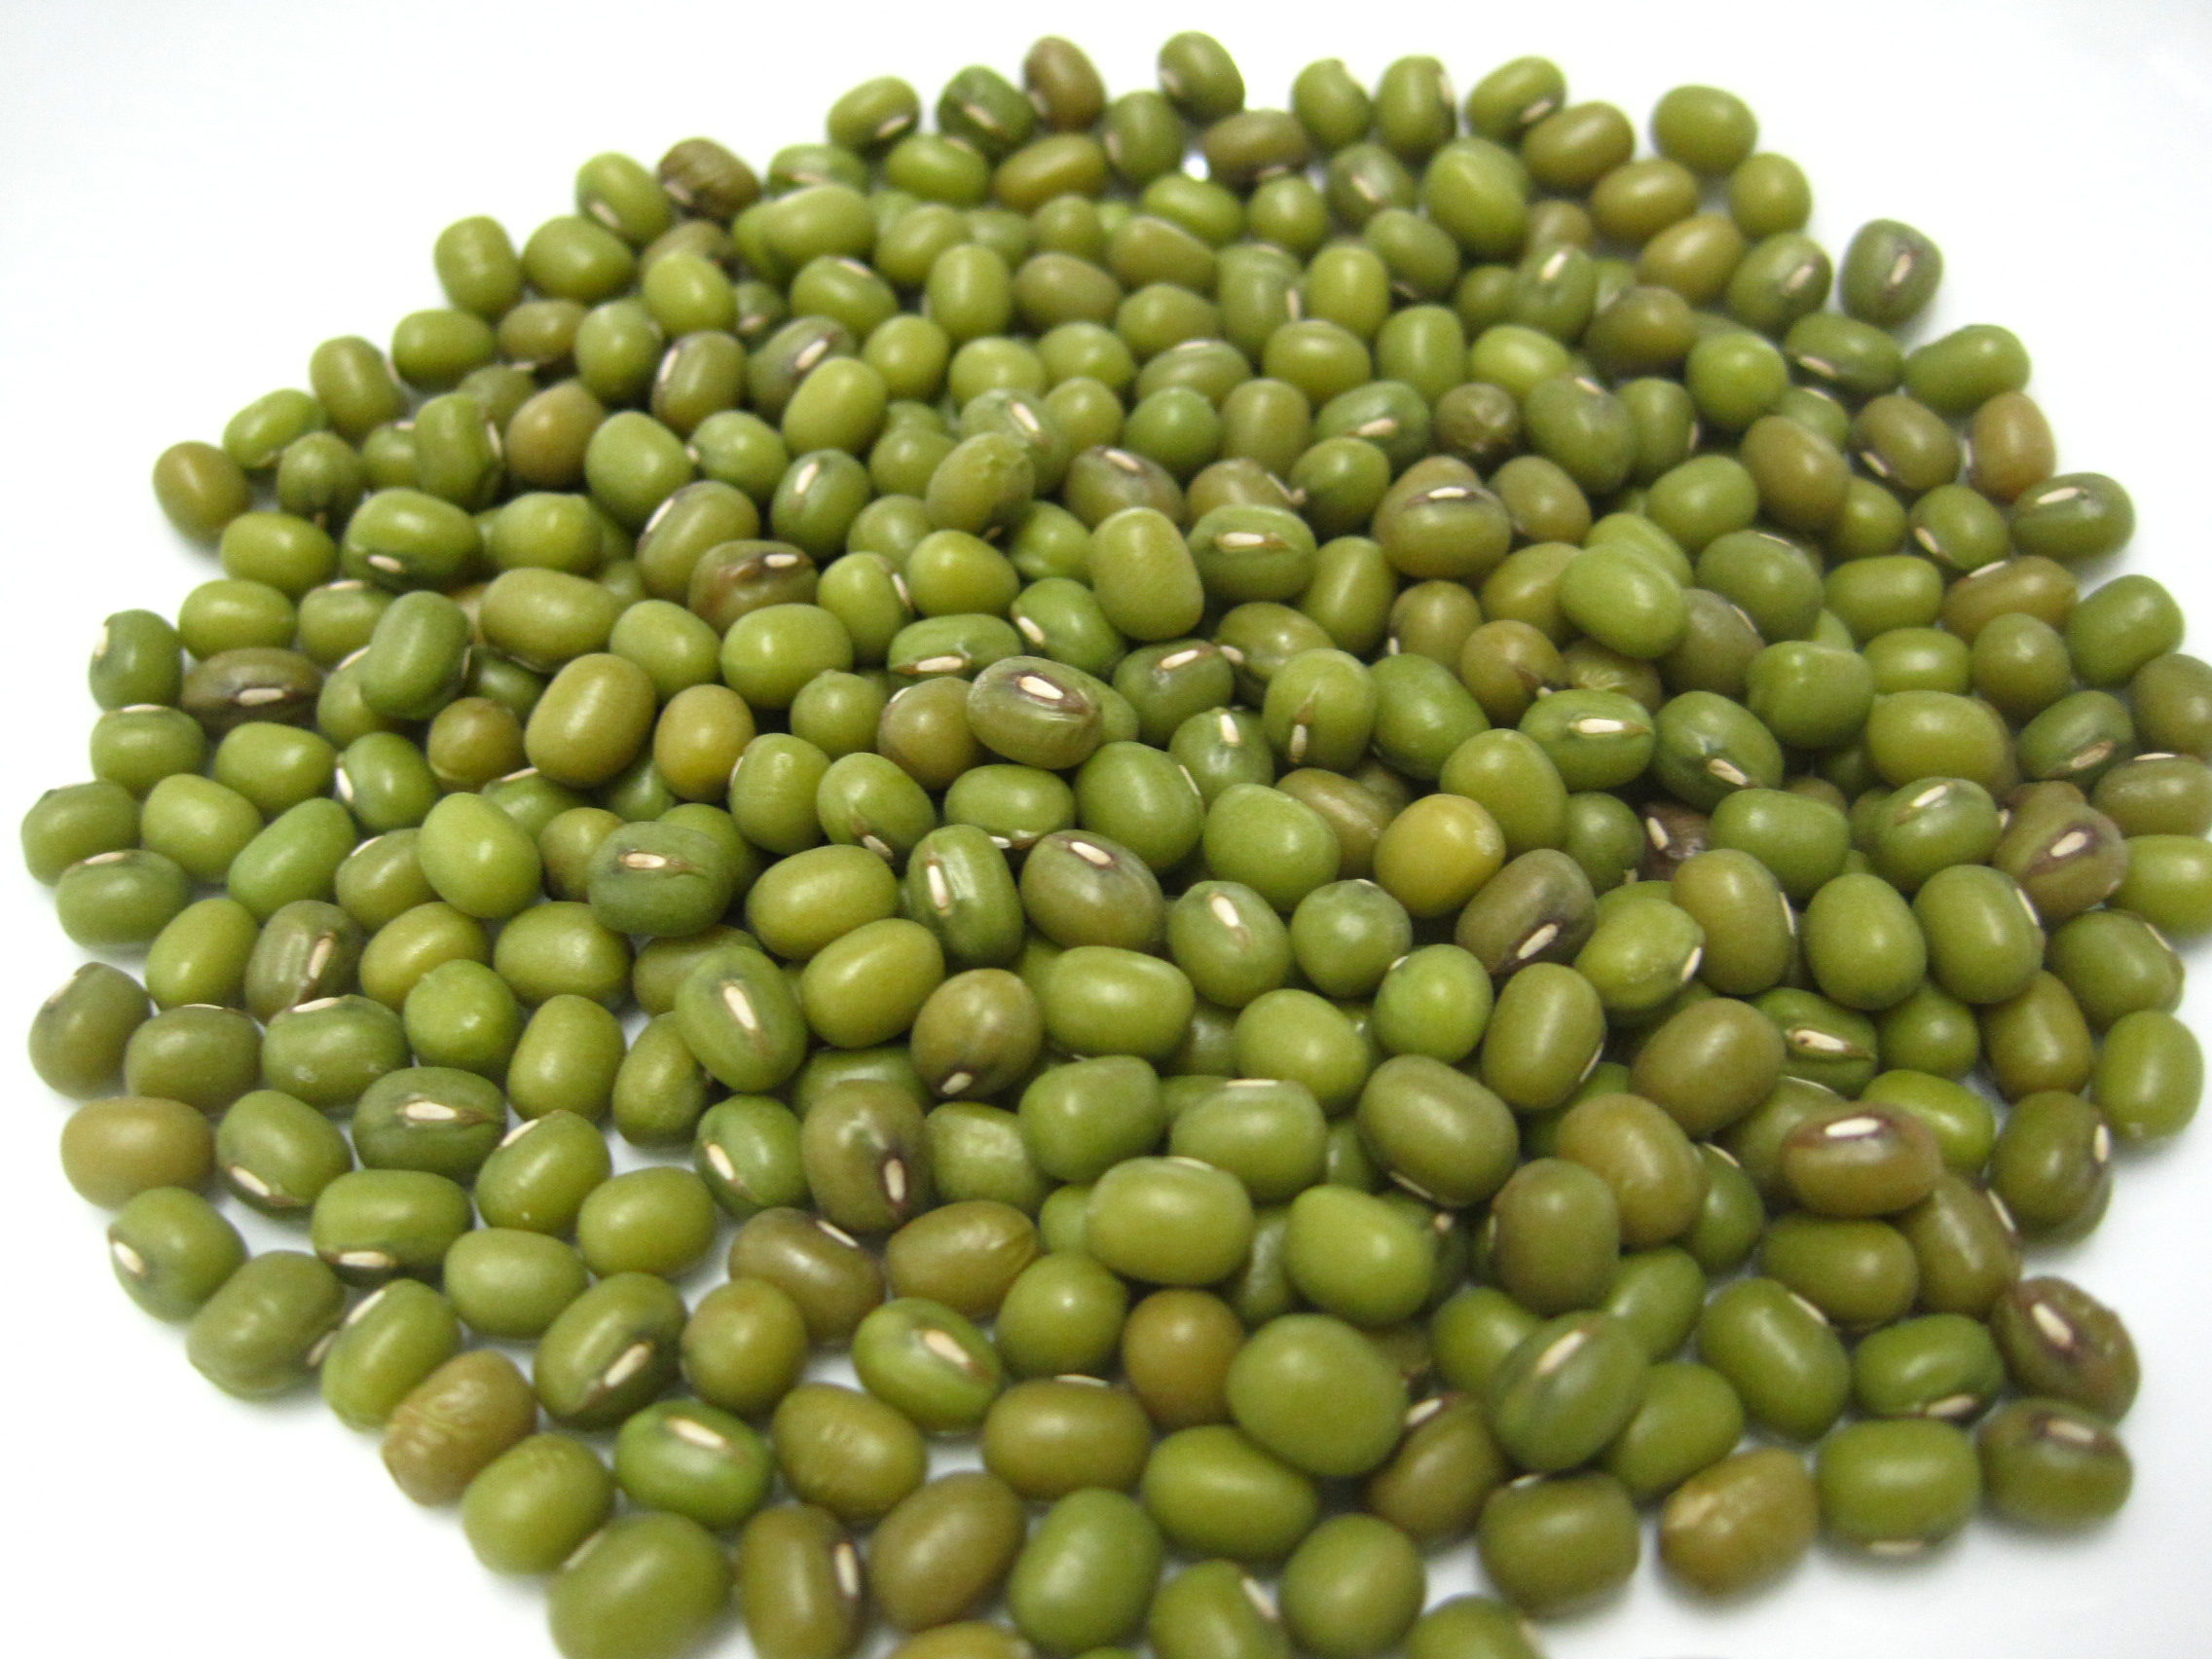 Mung beans Facts, Health Benefits and Nutritional Value